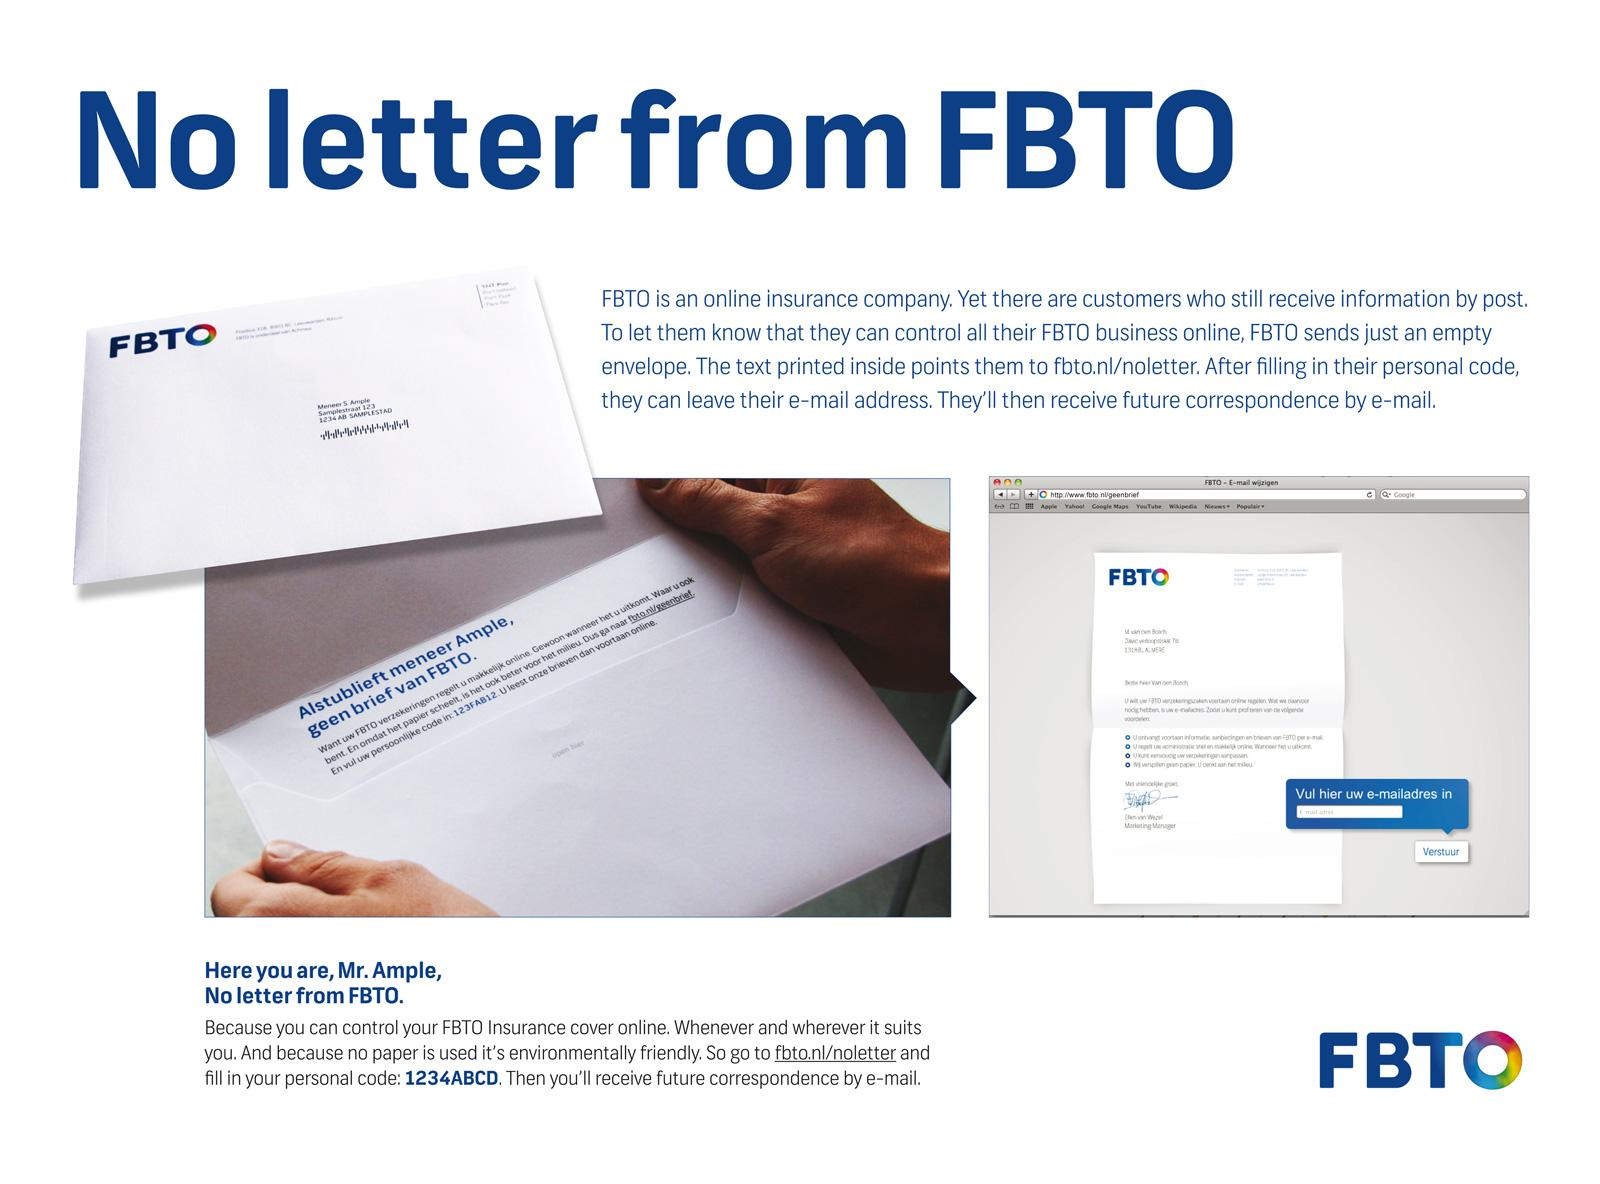 FBTO Direct Ad -  No letter